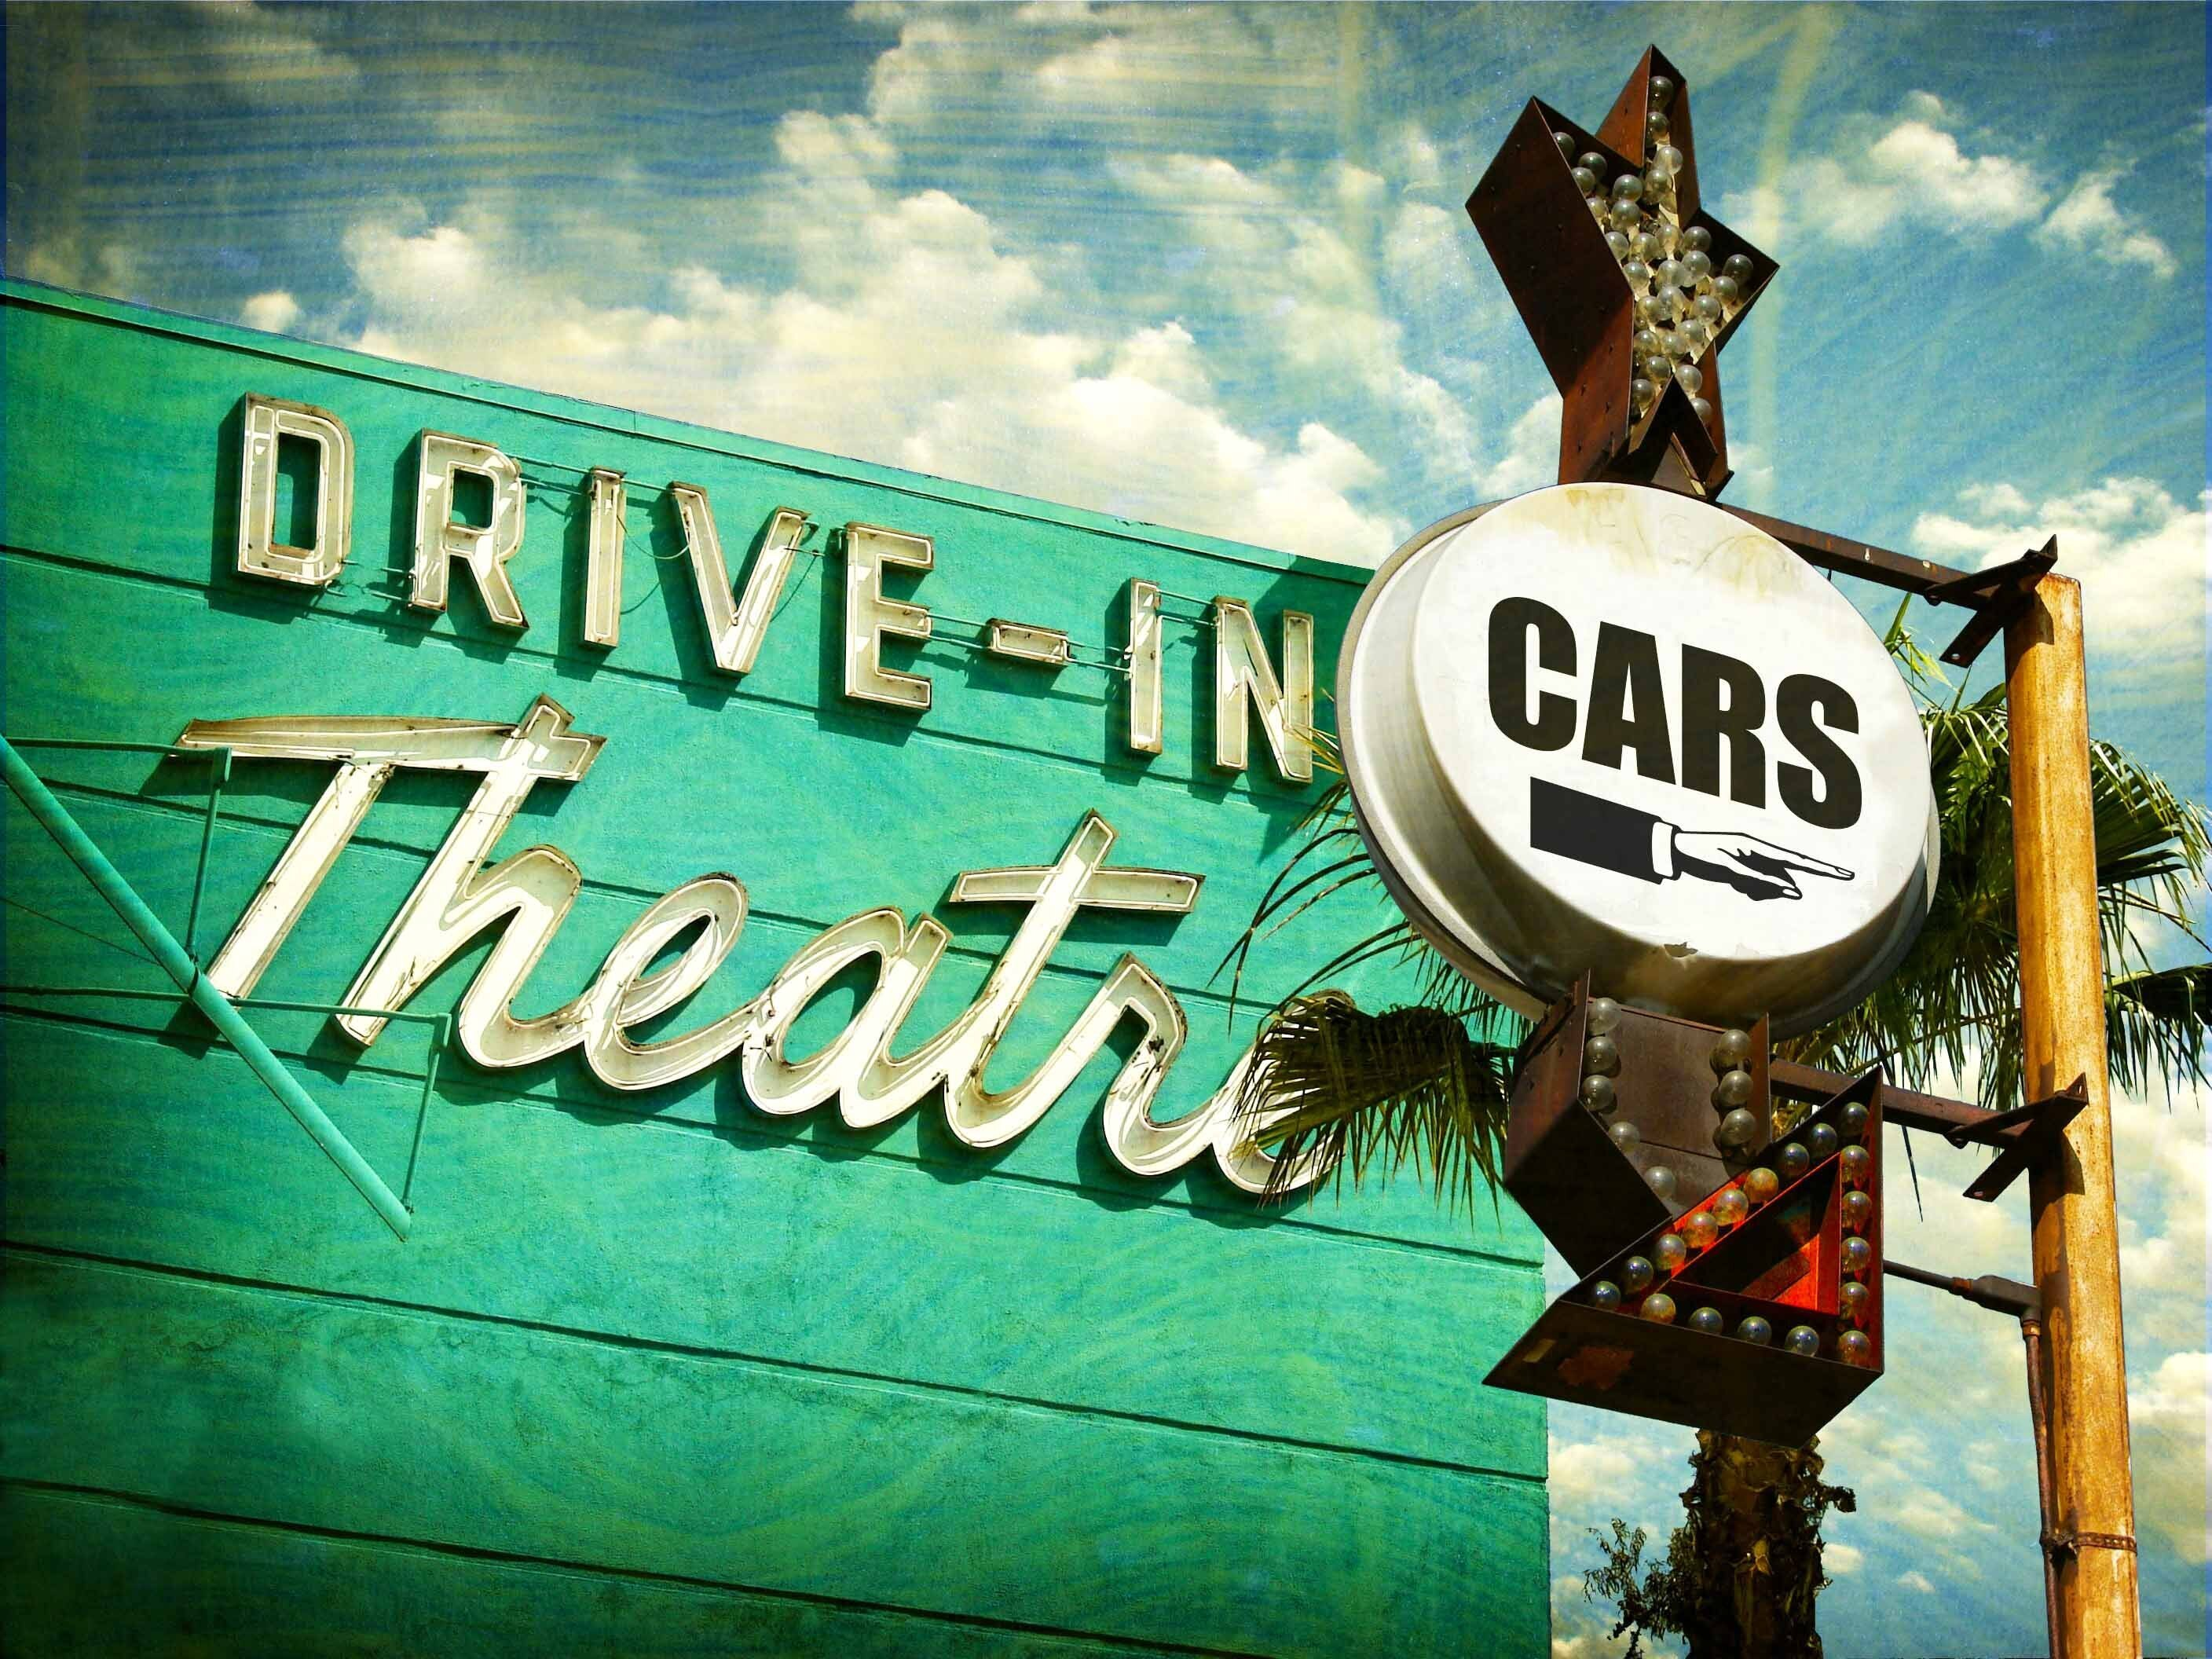 Drive-in theaters in and near New York City